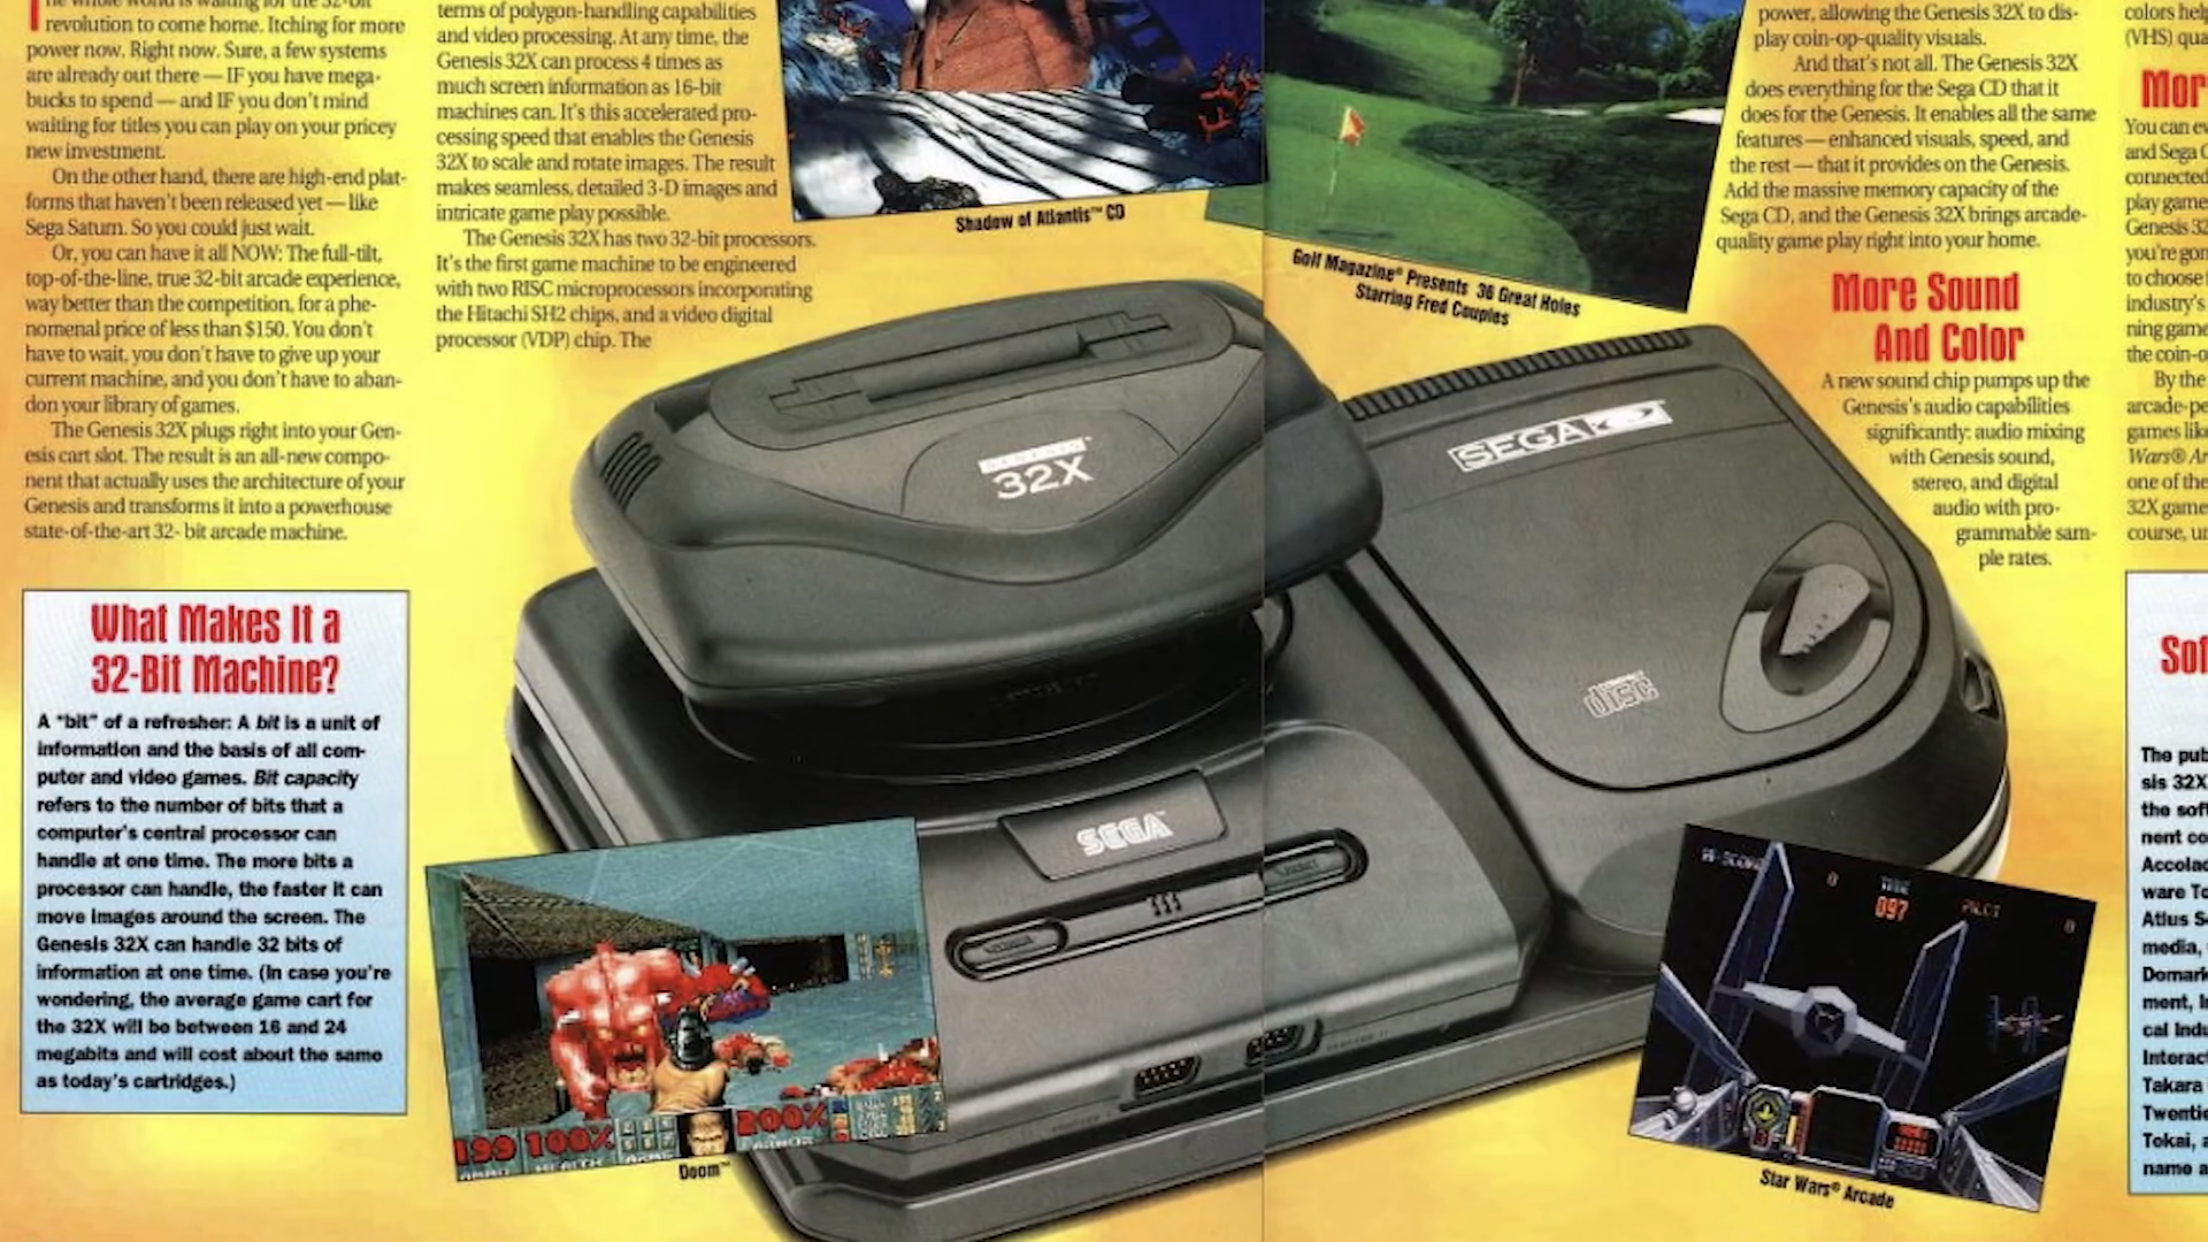 Sega 32X | SEGA | All video games, Sega saturn, Video games